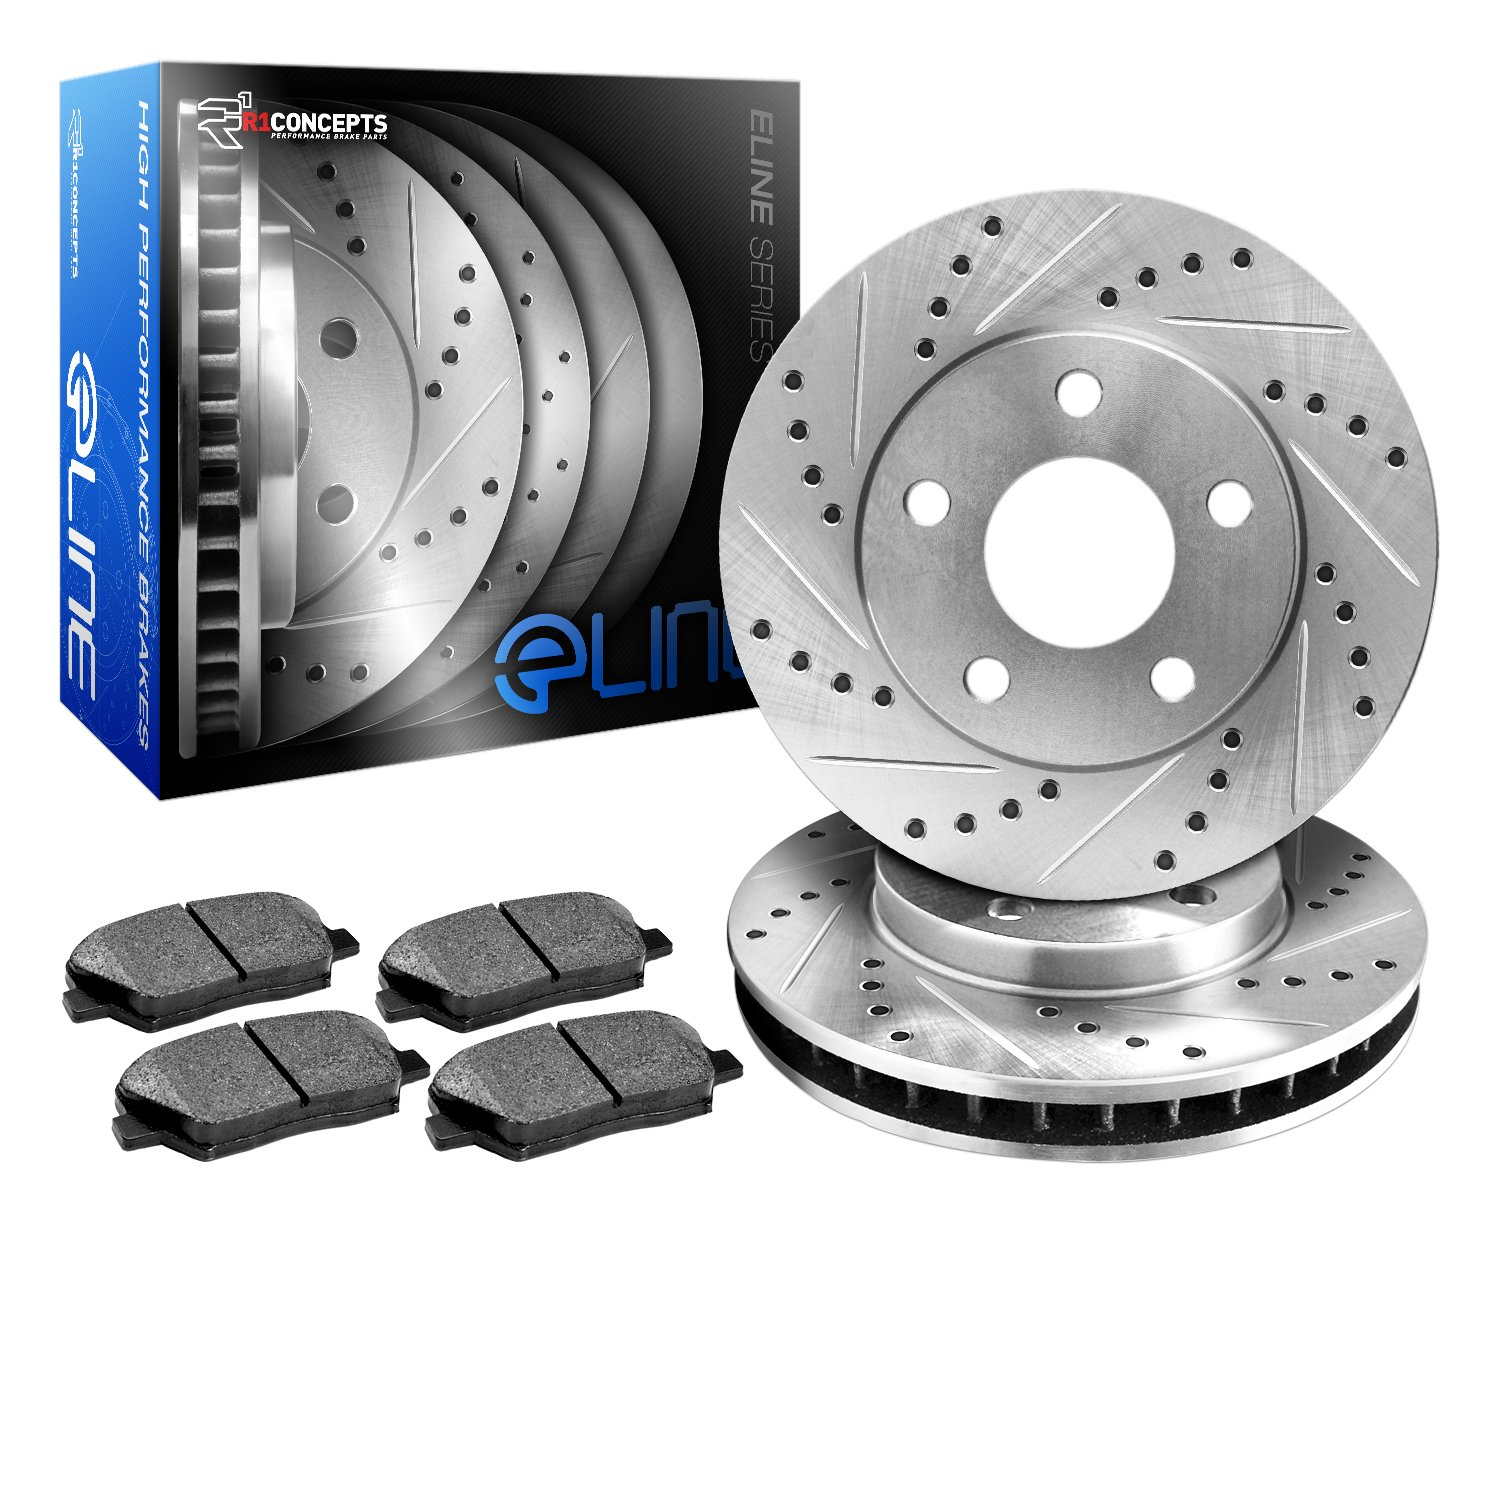 R1 Concepts KEDS11727 Eline Series Cross-Drilled Slotted Rotors And Ceramic Pads Kit - Front by R1 Concepts (Image #1)